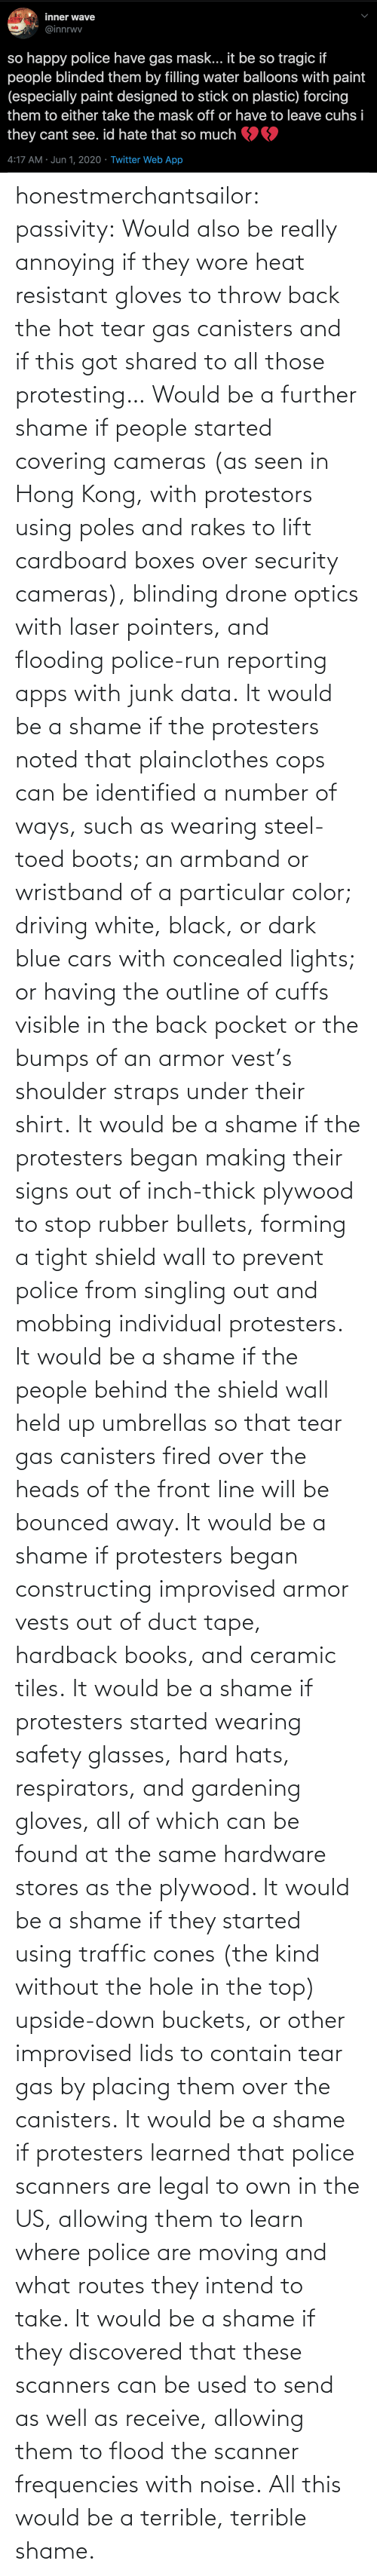 Held: honestmerchantsailor: passivity: Would also be really annoying if they wore heat resistant gloves to throw back the hot tear gas canisters and if this got shared to all those protesting… Would be a further shame if people started covering cameras (as seen in Hong Kong, with protestors using poles and rakes to lift cardboard boxes over security cameras), blinding drone optics with laser pointers, and flooding police-run reporting apps with junk data. It would be a shame if the protesters noted that plainclothes cops can be identified a number of ways, such as wearing steel-toed boots; an armband or wristband of a particular color; driving white, black, or dark blue cars with concealed lights; or having the outline of cuffs visible in the back pocket or the bumps of an armor vest's shoulder straps under their shirt. It would be a shame if the protesters began making their signs out of inch-thick plywood to stop rubber bullets, forming a tight shield wall to prevent police from singling out and mobbing individual protesters. It would be a shame if the people behind the shield wall held up umbrellas so that tear gas canisters fired over the heads of the front line will be bounced away. It would be a shame if protesters began constructing improvised armor vests out of duct tape, hardback books, and ceramic tiles. It would be a shame if protesters started wearing safety glasses, hard hats, respirators, and gardening gloves, all of which can be found at the same hardware stores as the plywood. It would be a shame if they started using traffic cones (the kind without the hole in the top) upside-down buckets, or other improvised lids to contain tear gas by placing them over the canisters. It would be a shame if protesters learned that police scanners are legal to own in the US, allowing them to learn where police are moving and what routes they intend to take. It would be a shame if they discovered that these scanners can be used to send as well as receive, allowing them to flood the scanner frequencies with noise. All this would be a terrible, terrible shame.